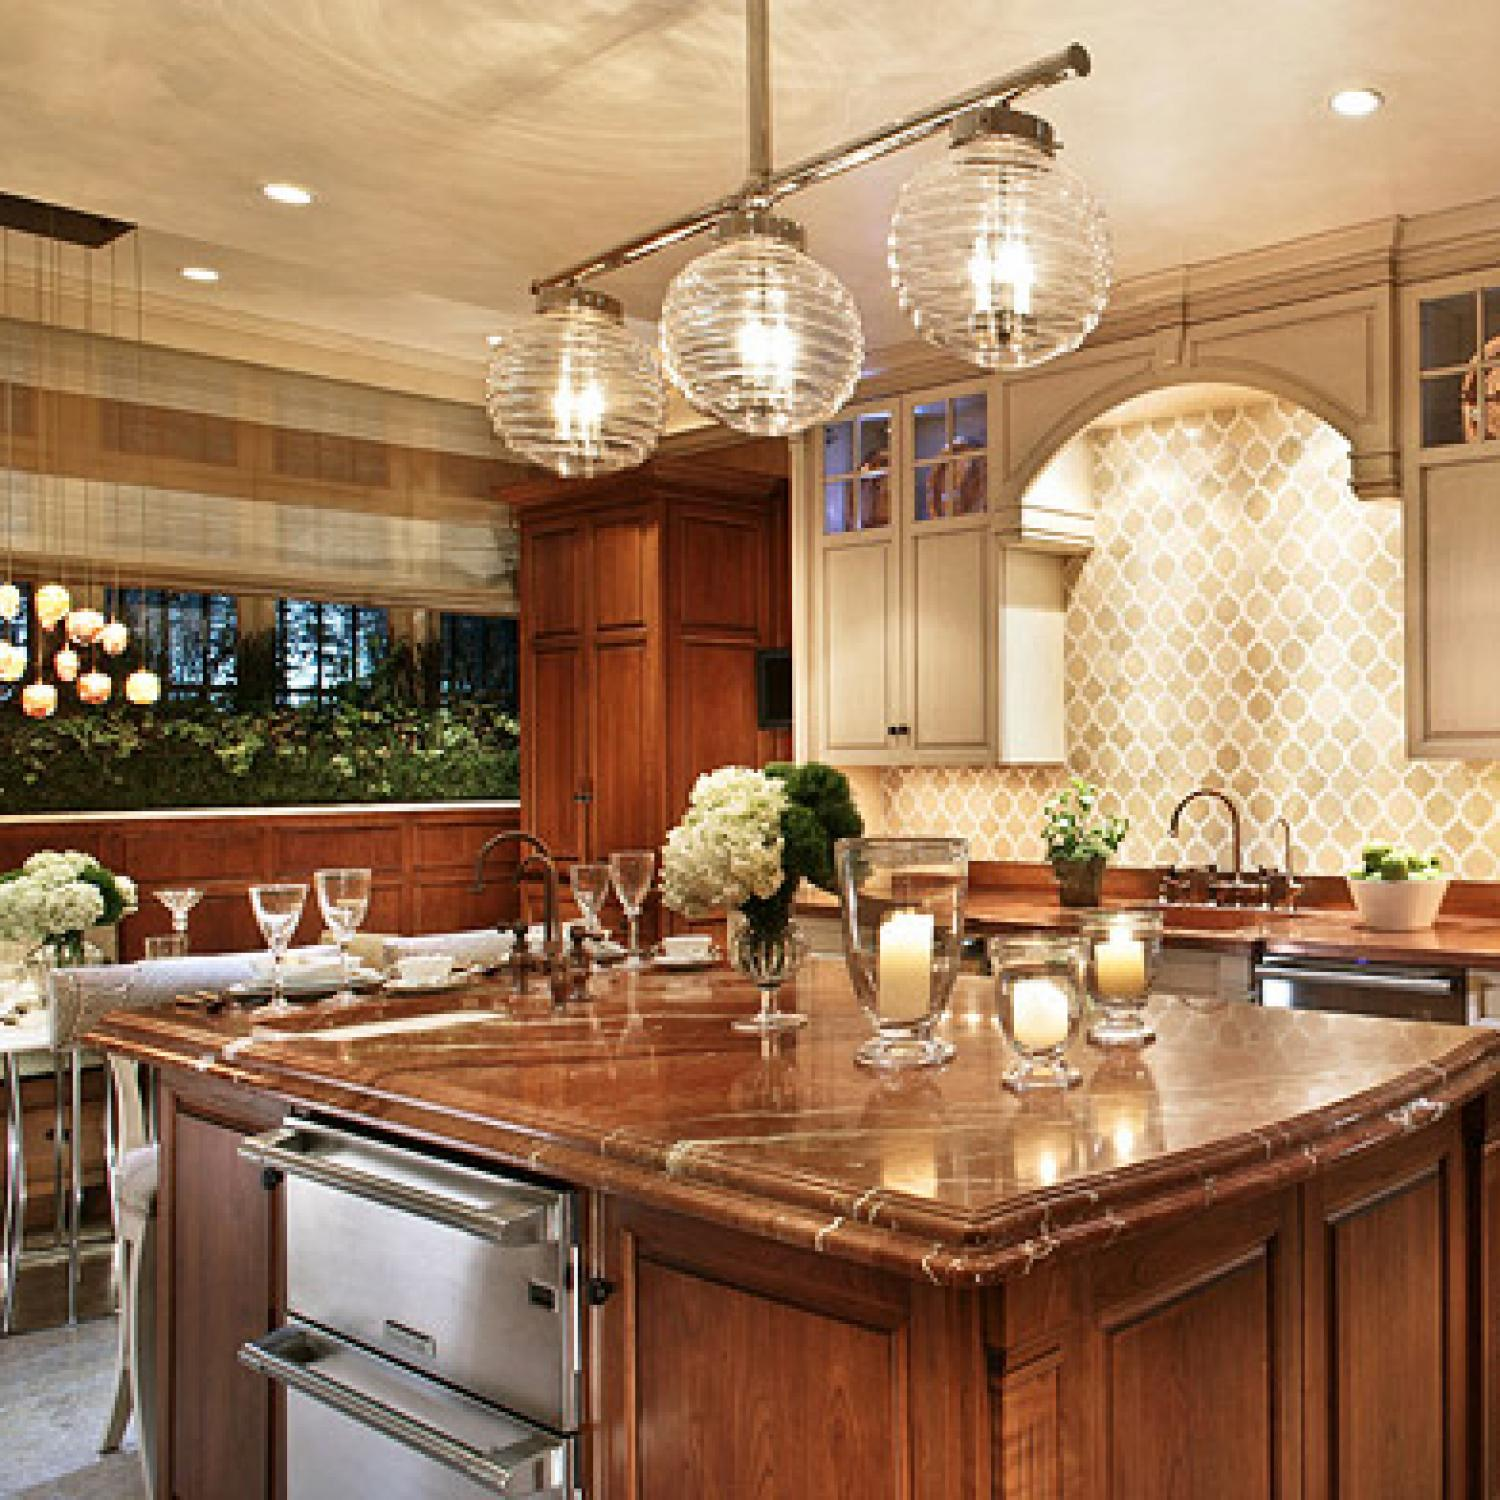 Welcoming, Intimate Showhouse Kitchen | Traditional Home